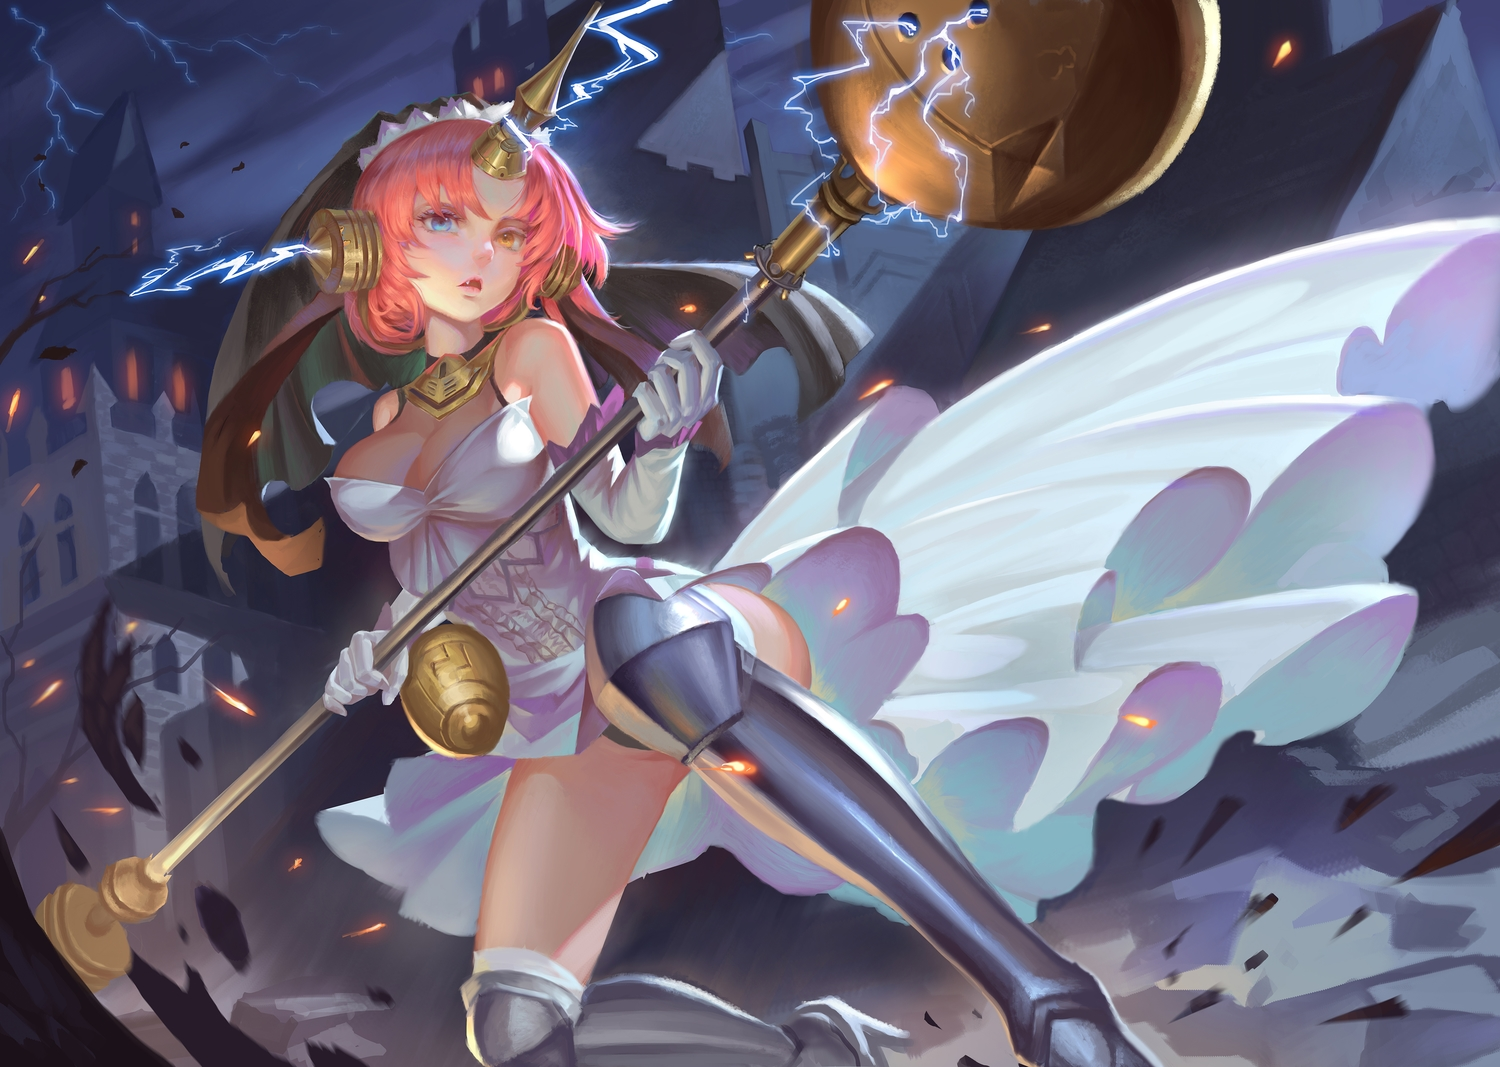 armor bicolored_eyes breasts building cleavage clouds dress elbow_gloves fang fate/apocrypha fate/grand_order fate_(series) frankenstein gloves god_hunter horns night panties pink_hair short_hair sky underwear weapon